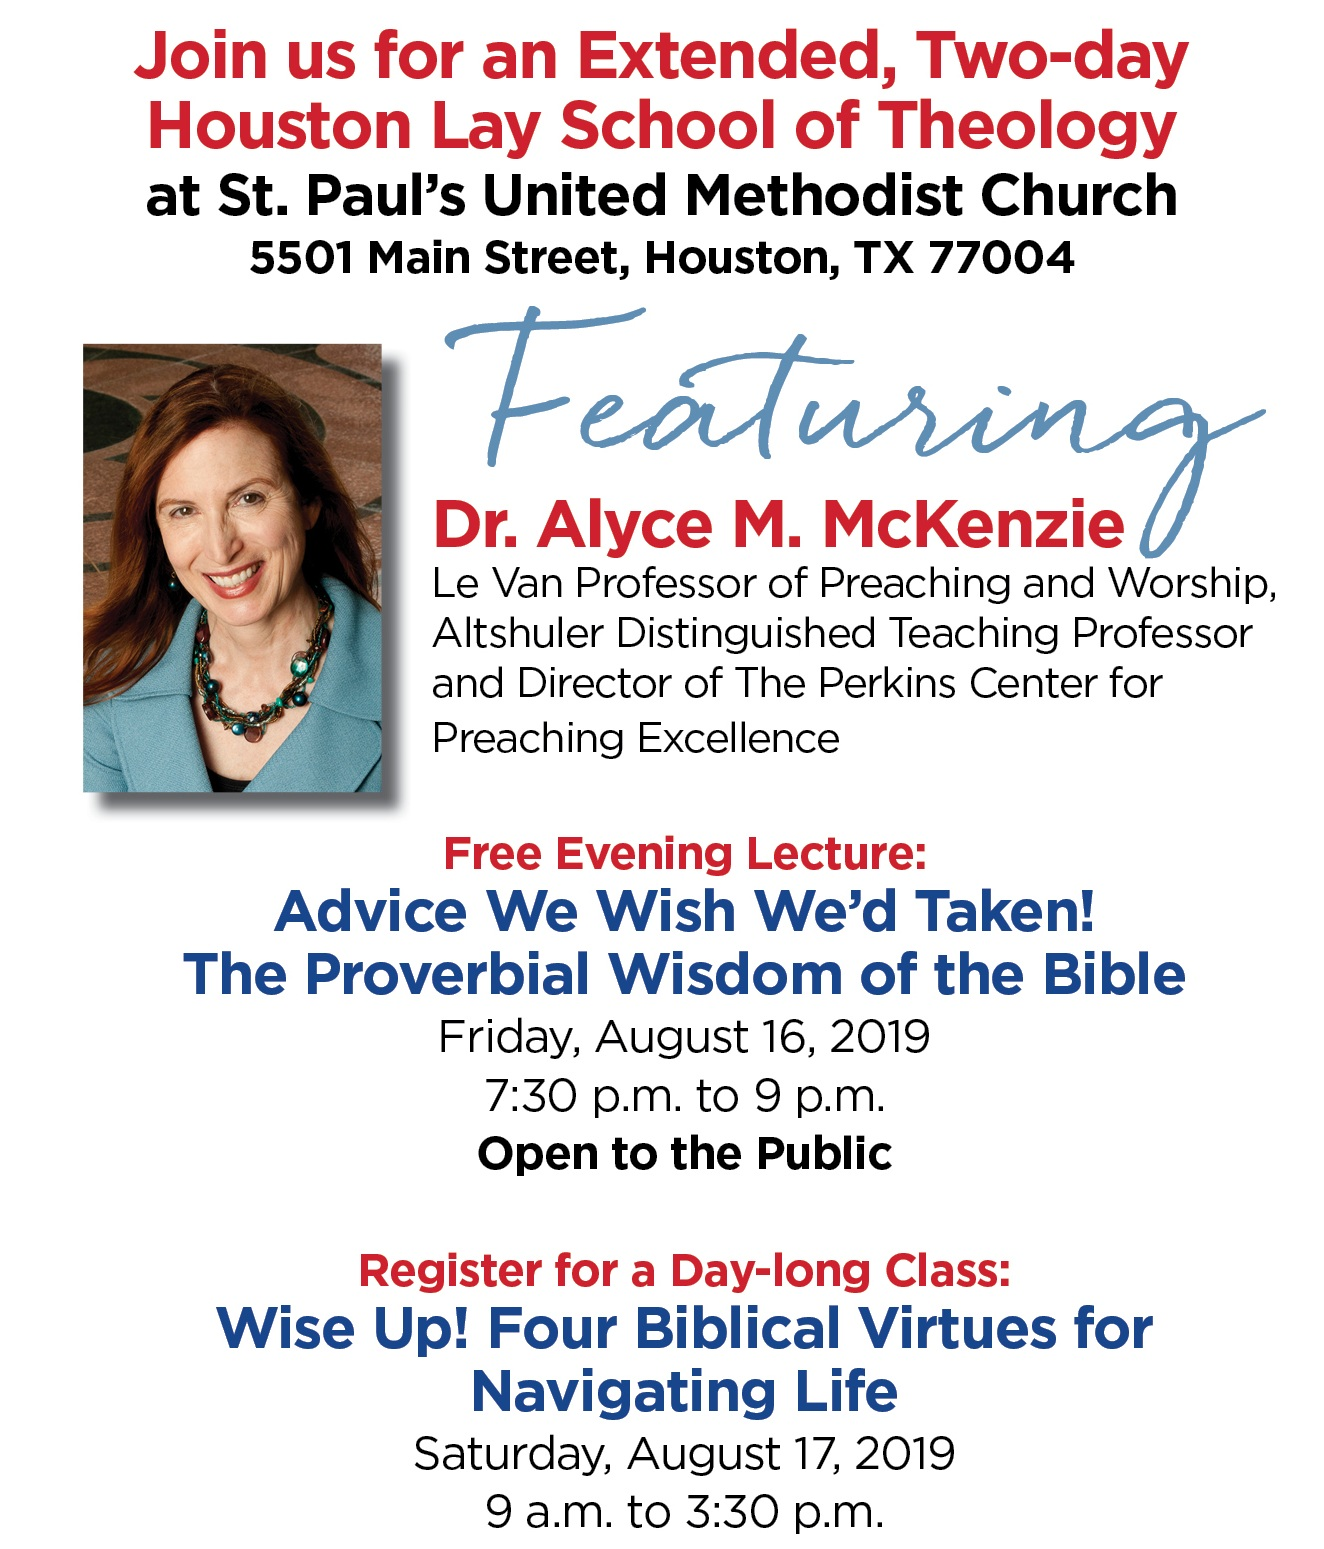 Houston Lay School of Theology: The Wit of Alyce McKenzie